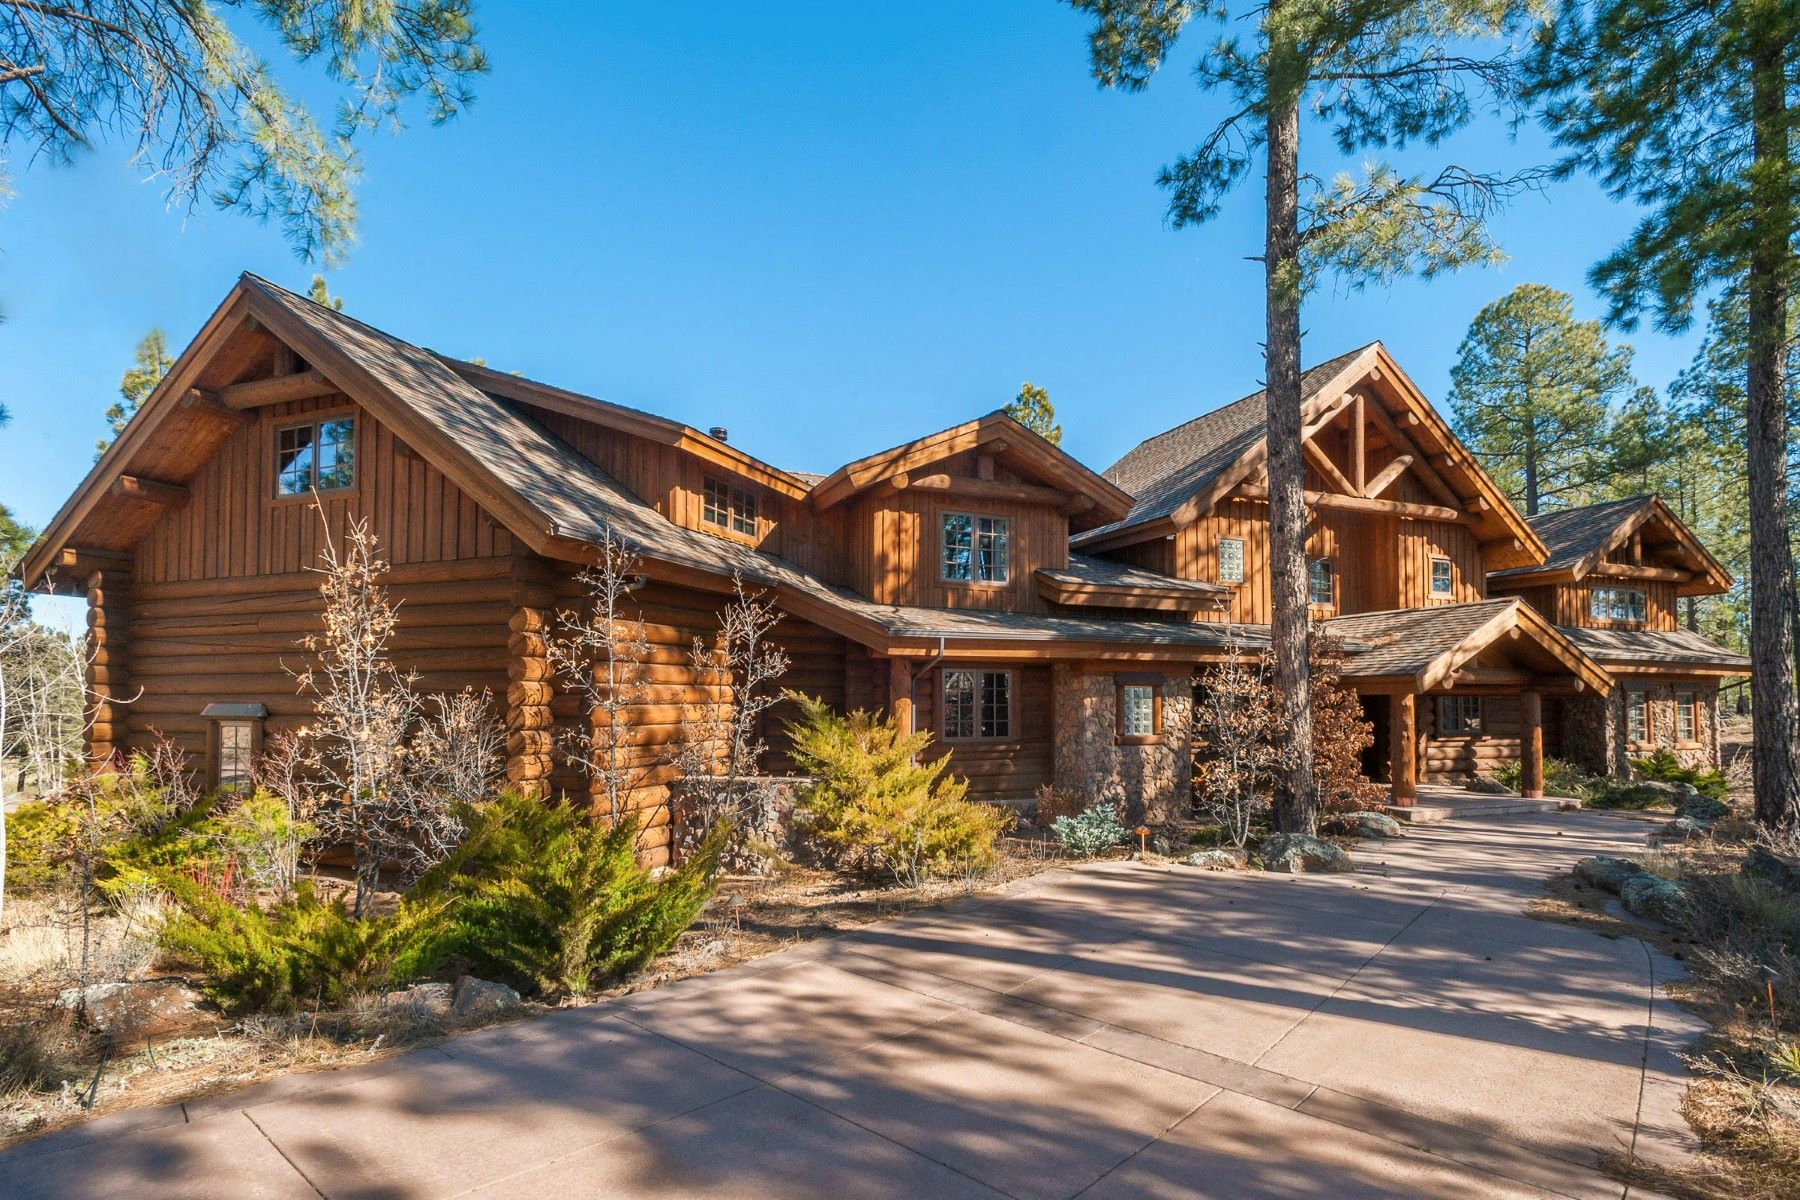 Single Family Home for Sale at Magnificent Luxury Log Retreat 2892 Andrew Douglass, Flagstaff, Arizona, 86005 United States